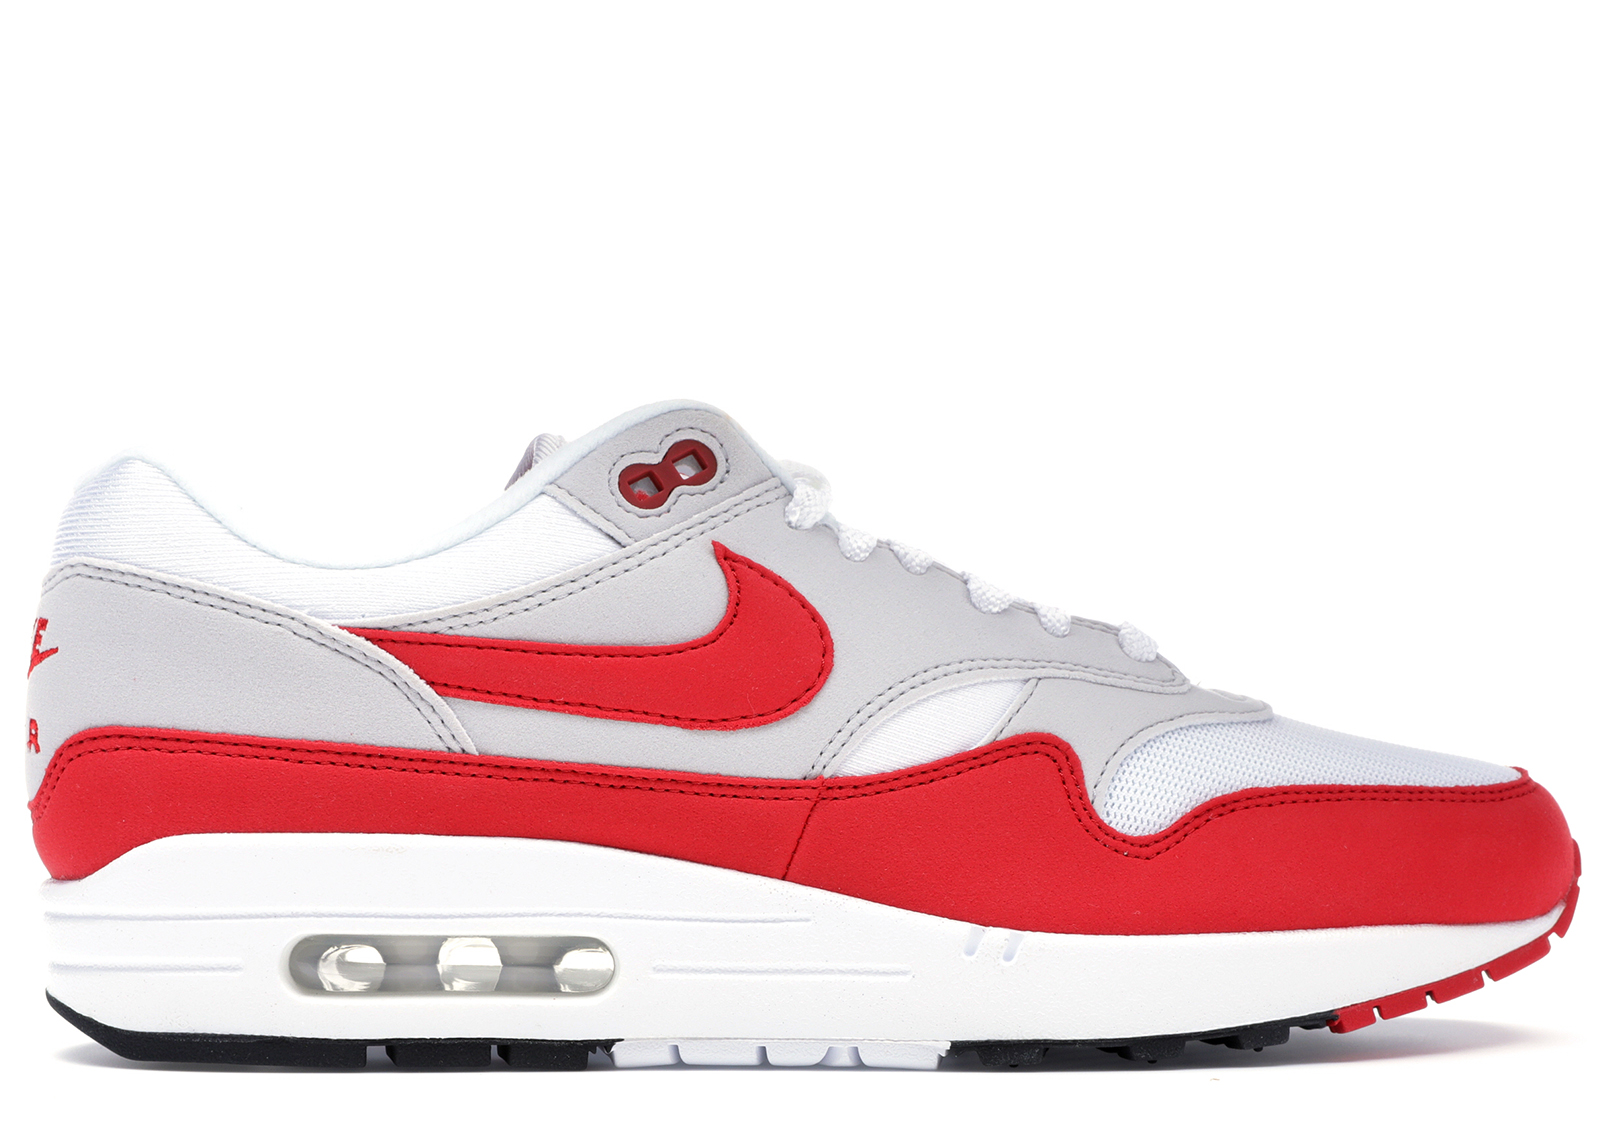 NIKE AIR MAX 1 OG ANNIVERSARY RESTOCK REVIEW YouTube